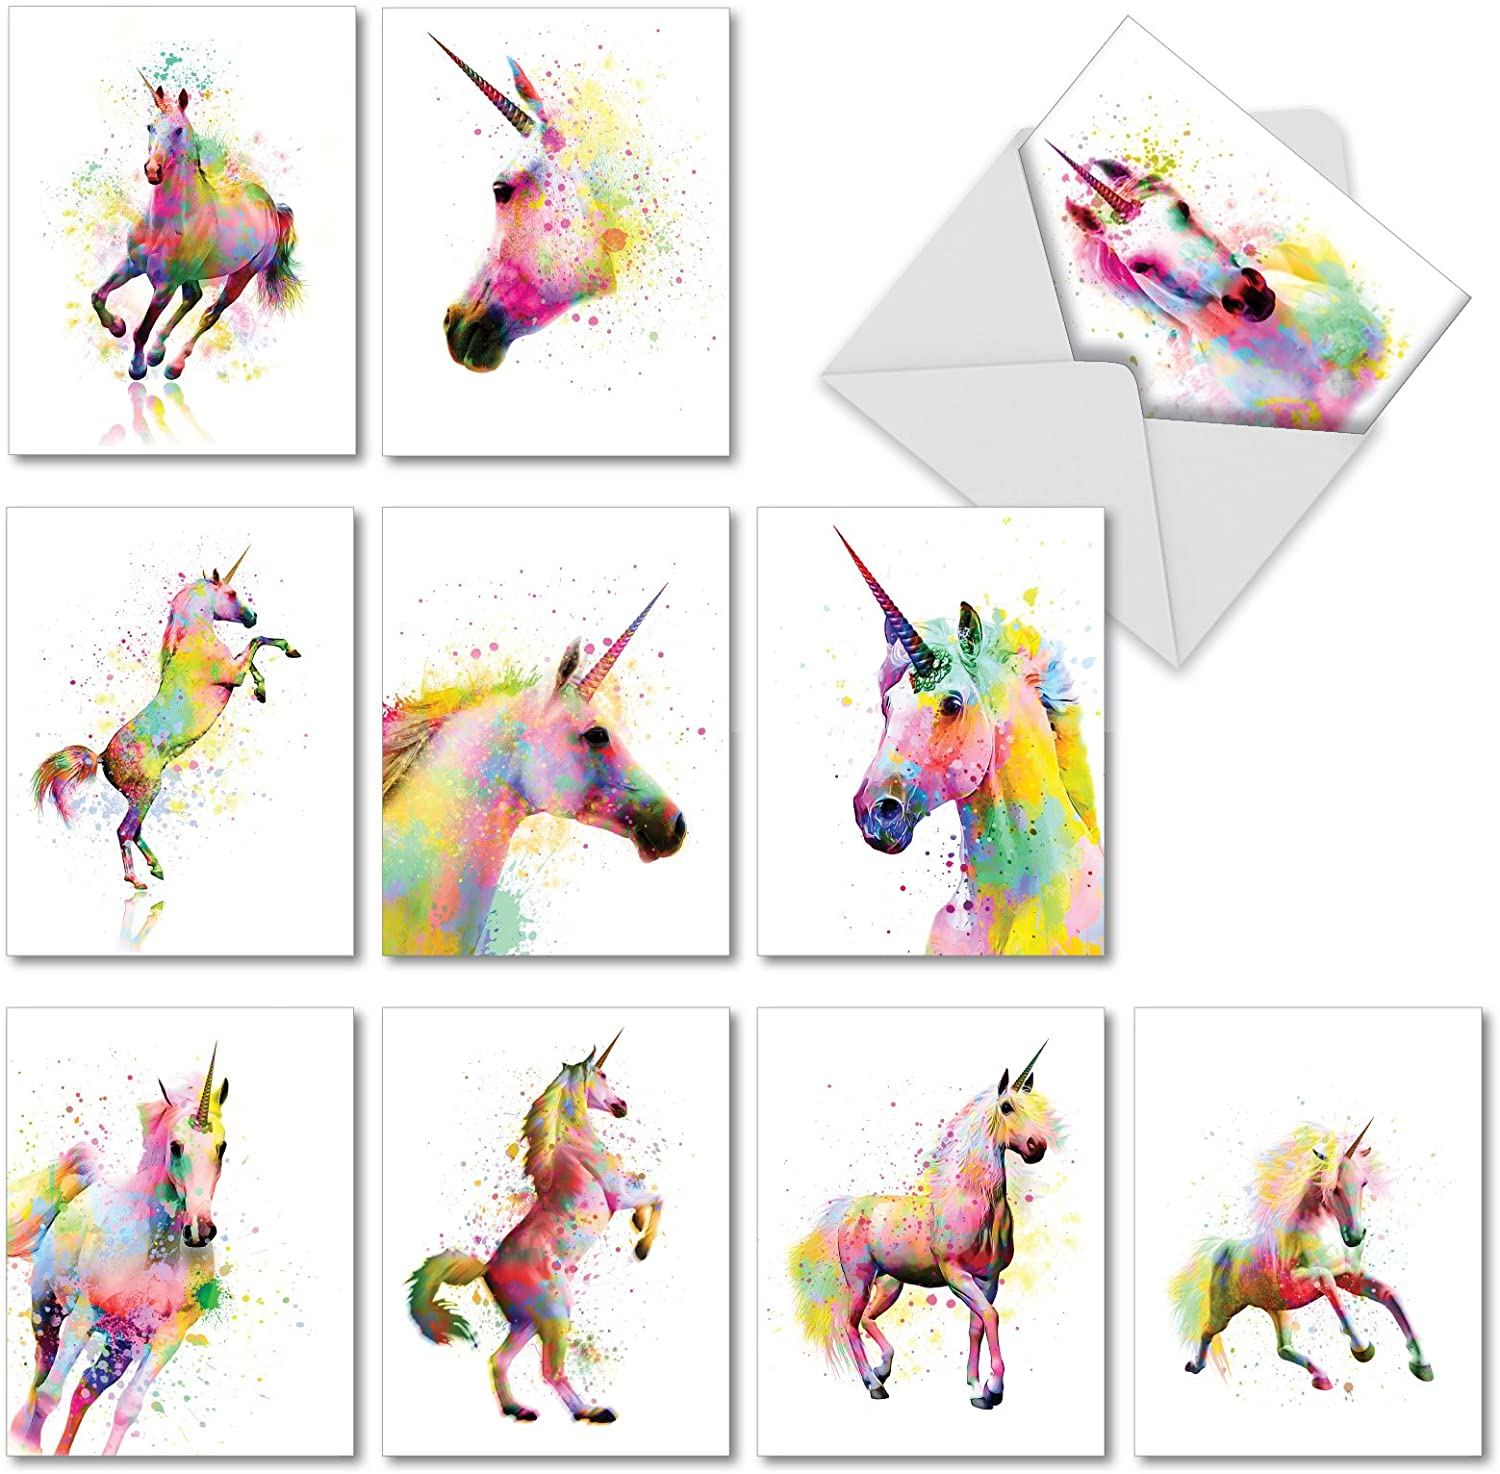 Funky Rainbow Unicorns - 10 Pack of Thank You Note Cards with Envelopes (4 x 5.12 Inch) - Majestic Horses, Animal Greeting Notecard Set for Kids - Colorful All Occasion Thanks Cards AM6748TYG-B1x10